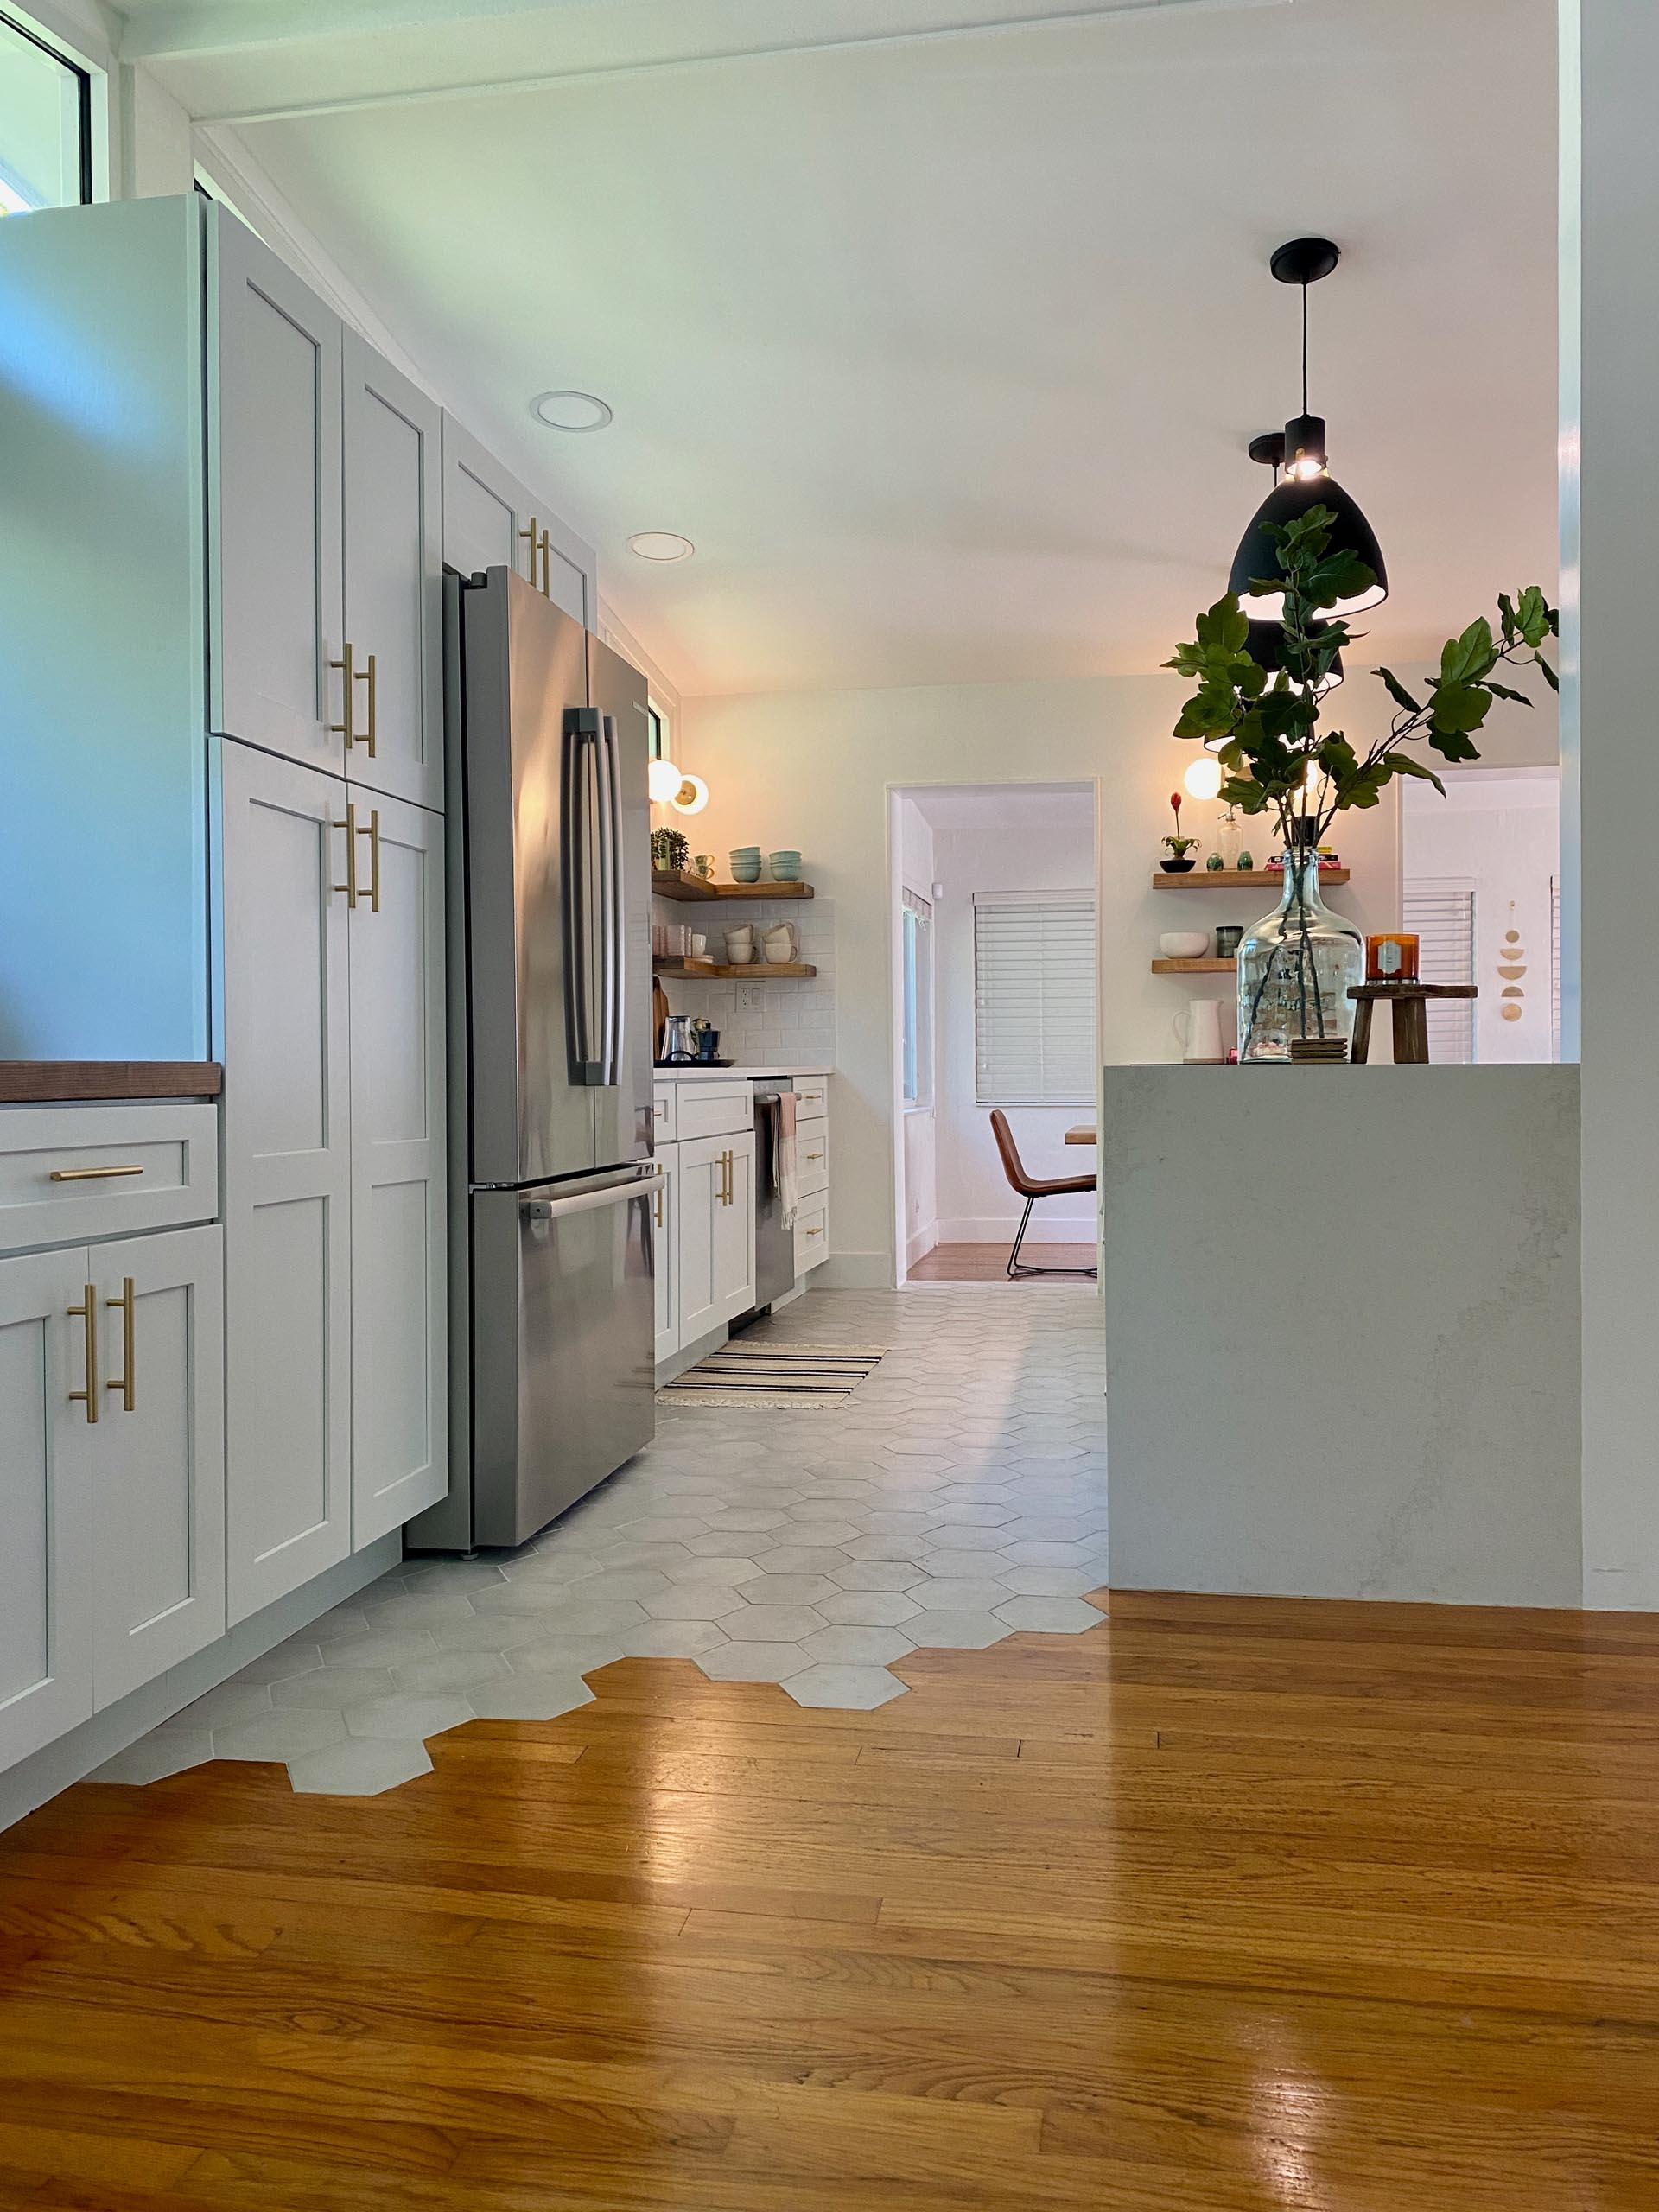 A modern and open kitchen with a peninsula, white cabinets, gold accents, open wood shelving, and hexagonal floor tiles.